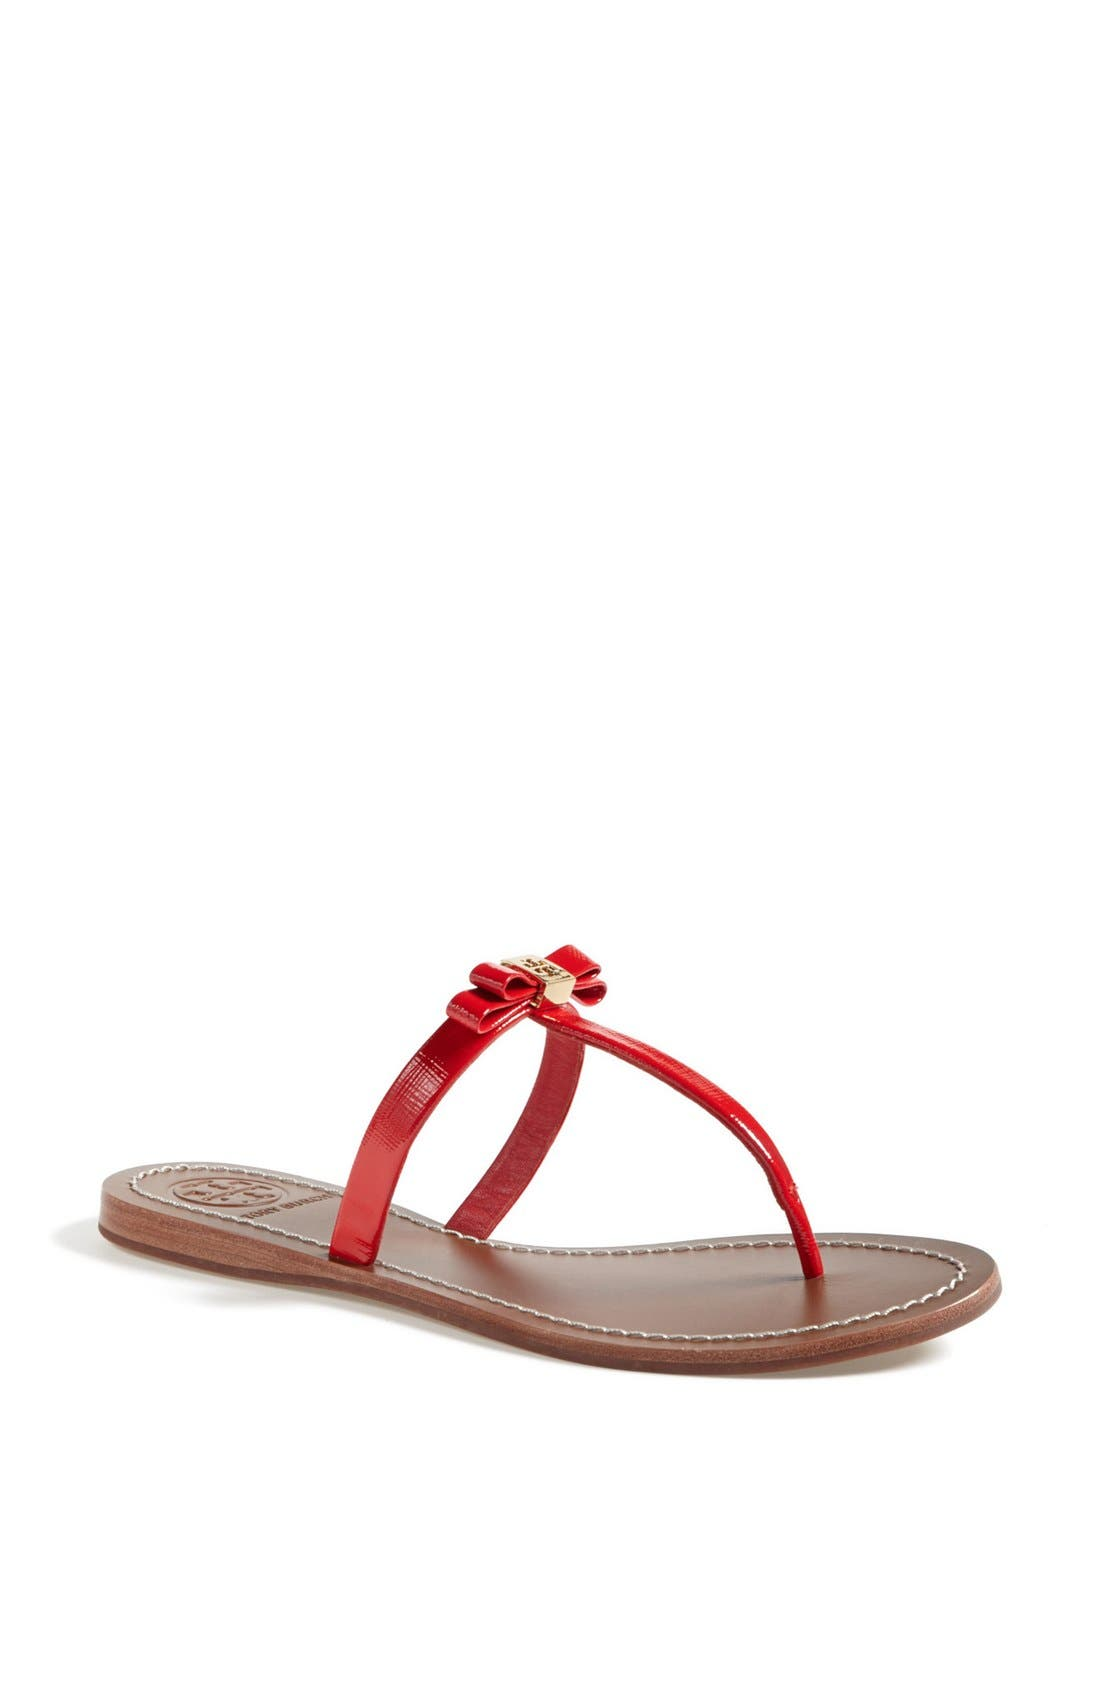 Main Image - Tory Burch 'Leighanne' Thong Sandal (Online Only)